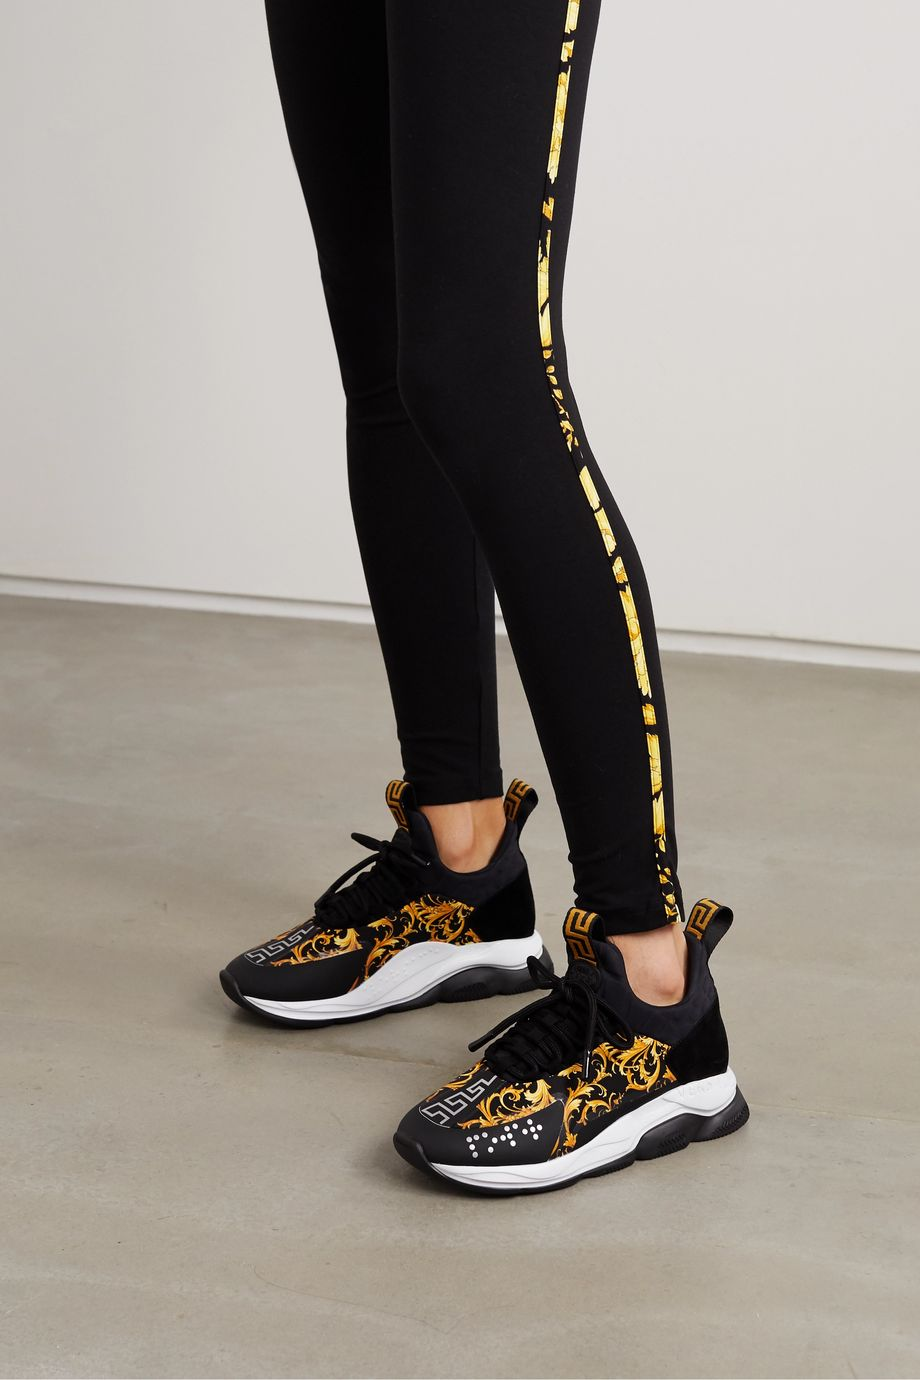 Versace Chain Reaction printed nylon, suede and neoprene sneakers